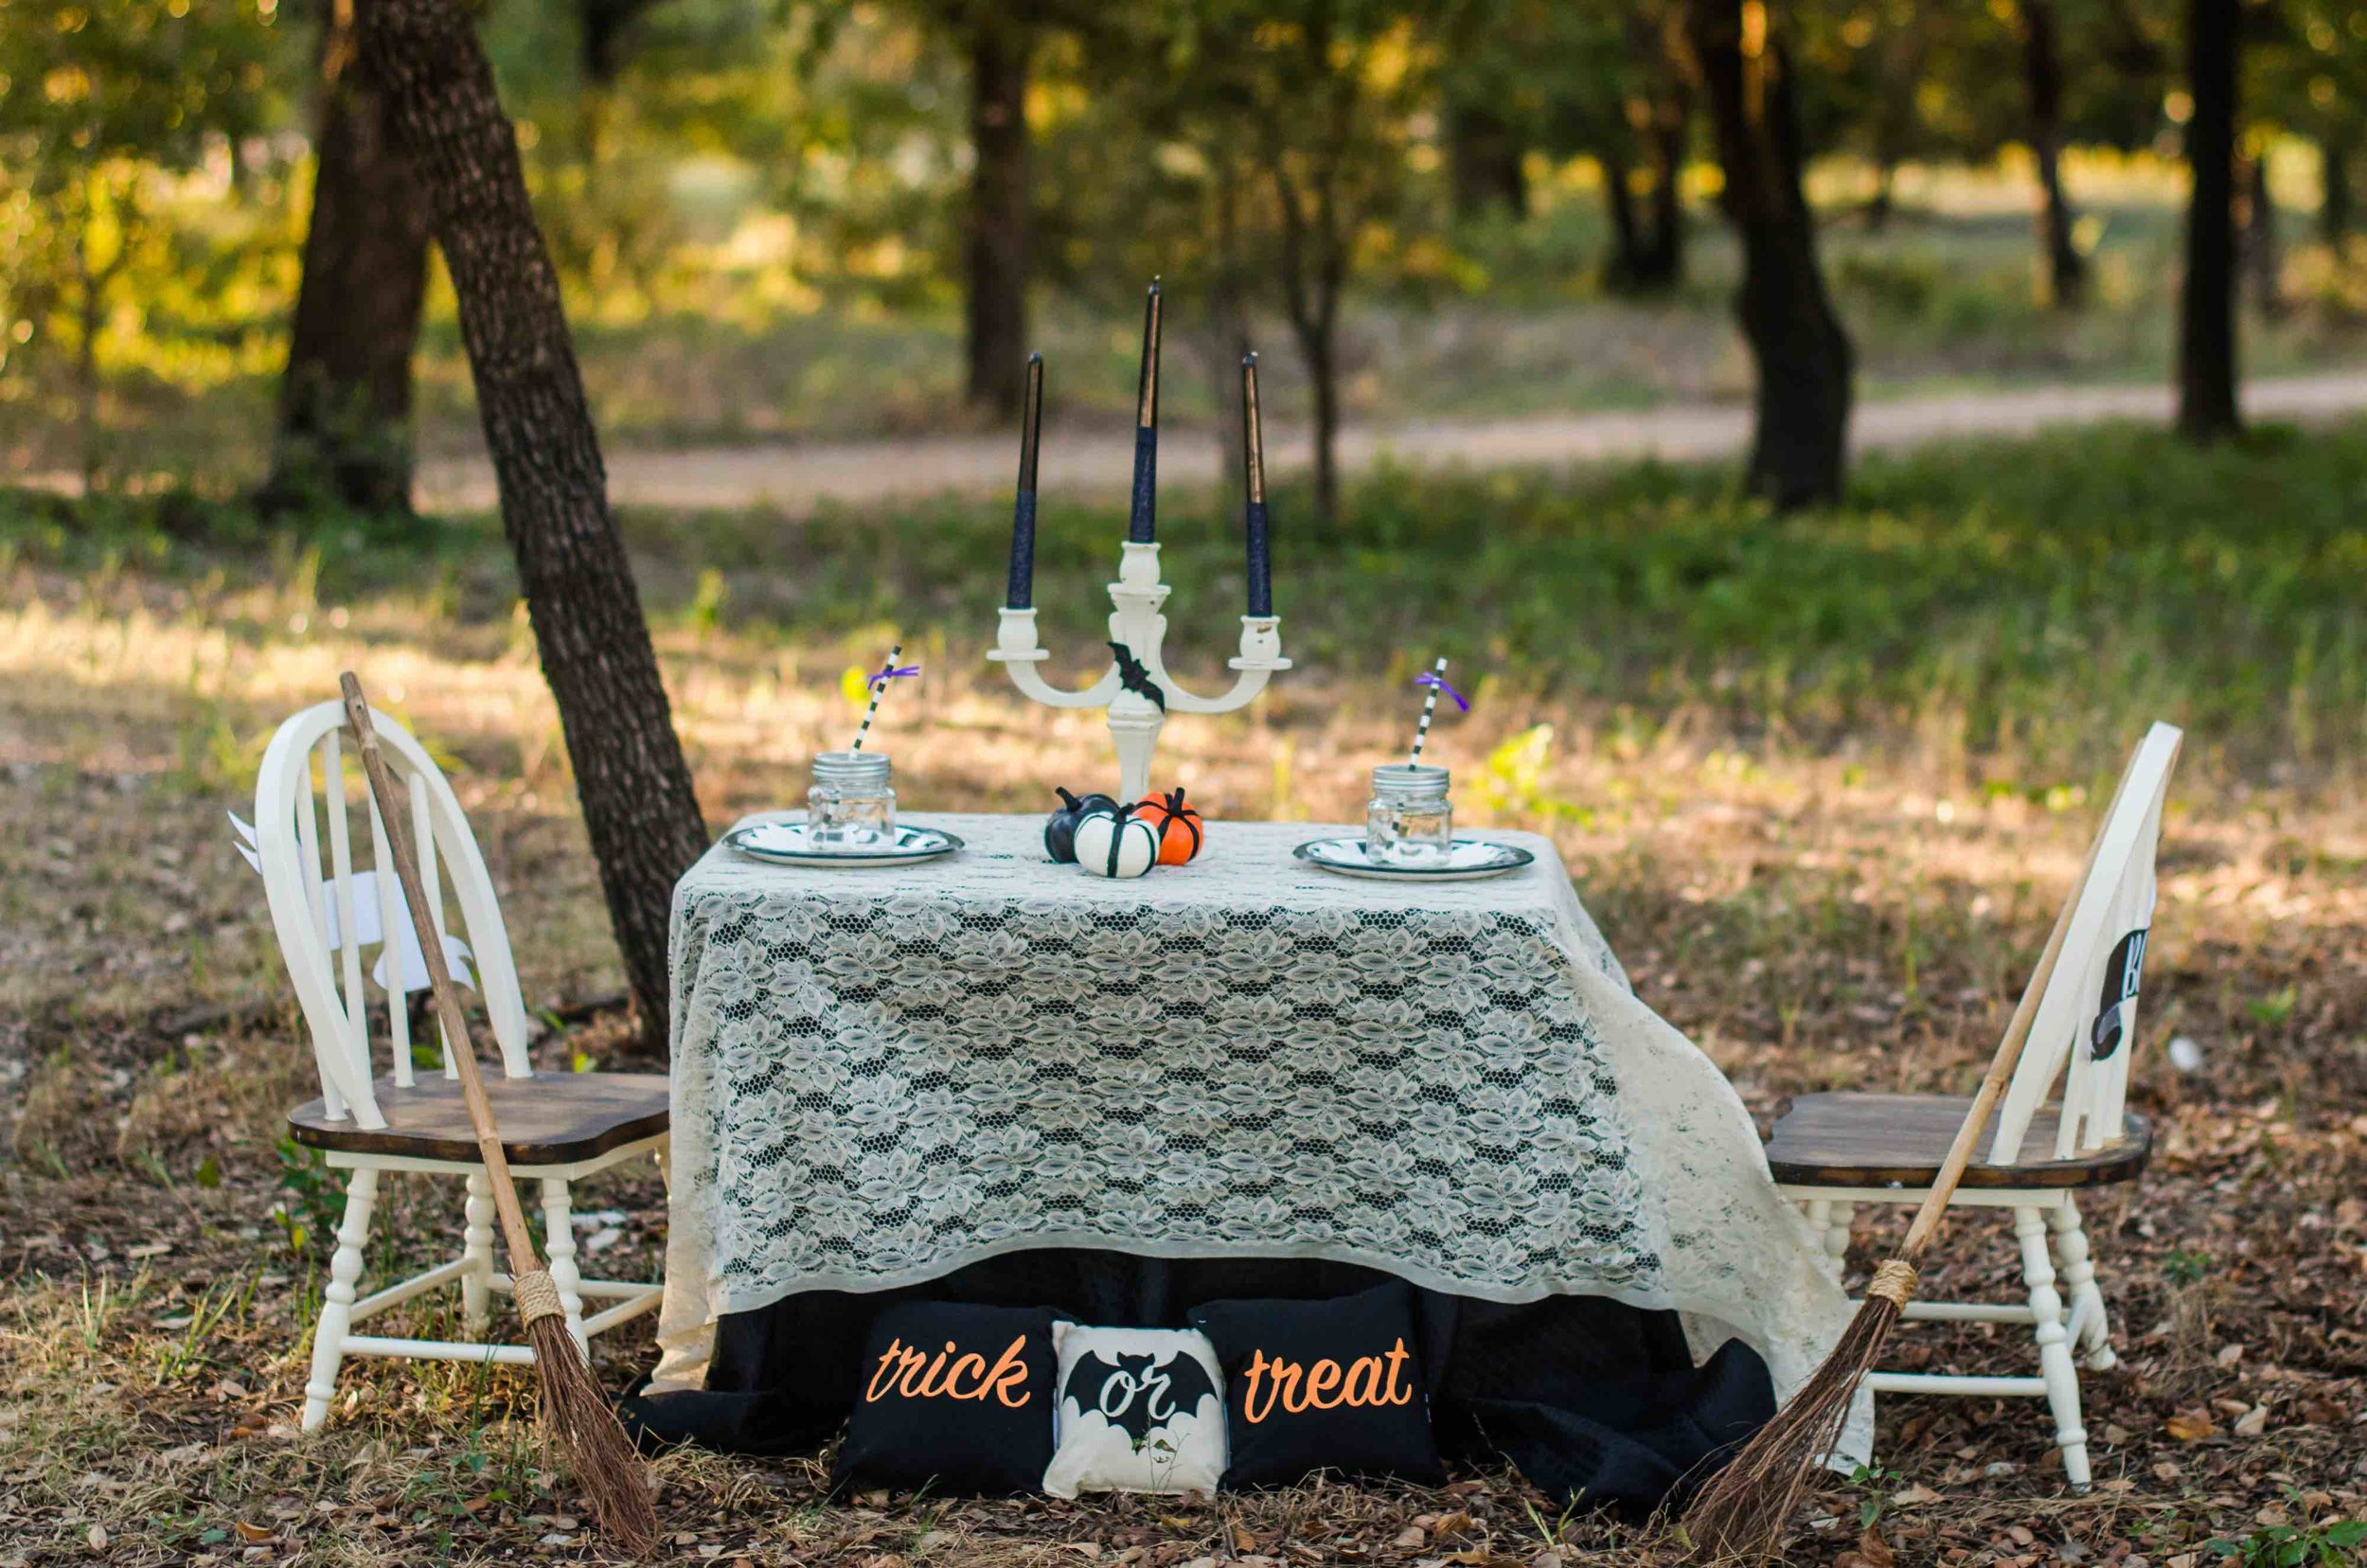 Trick or Treat - it's a cute Halloween Party Tablescape for a Kids Halloween Party - layer a lace tablescloth over a black linen and it's the perfect choice for a Hallowen Celebration. Click to see all the Halloween Party Ideas that you can re-create for your very own Halloween Kids Party. Styled by party stylist Mint Event Design. #halloween #partyideas #partyinspiration #partydecor #tablescape #halloweendecor #halloweendecorations